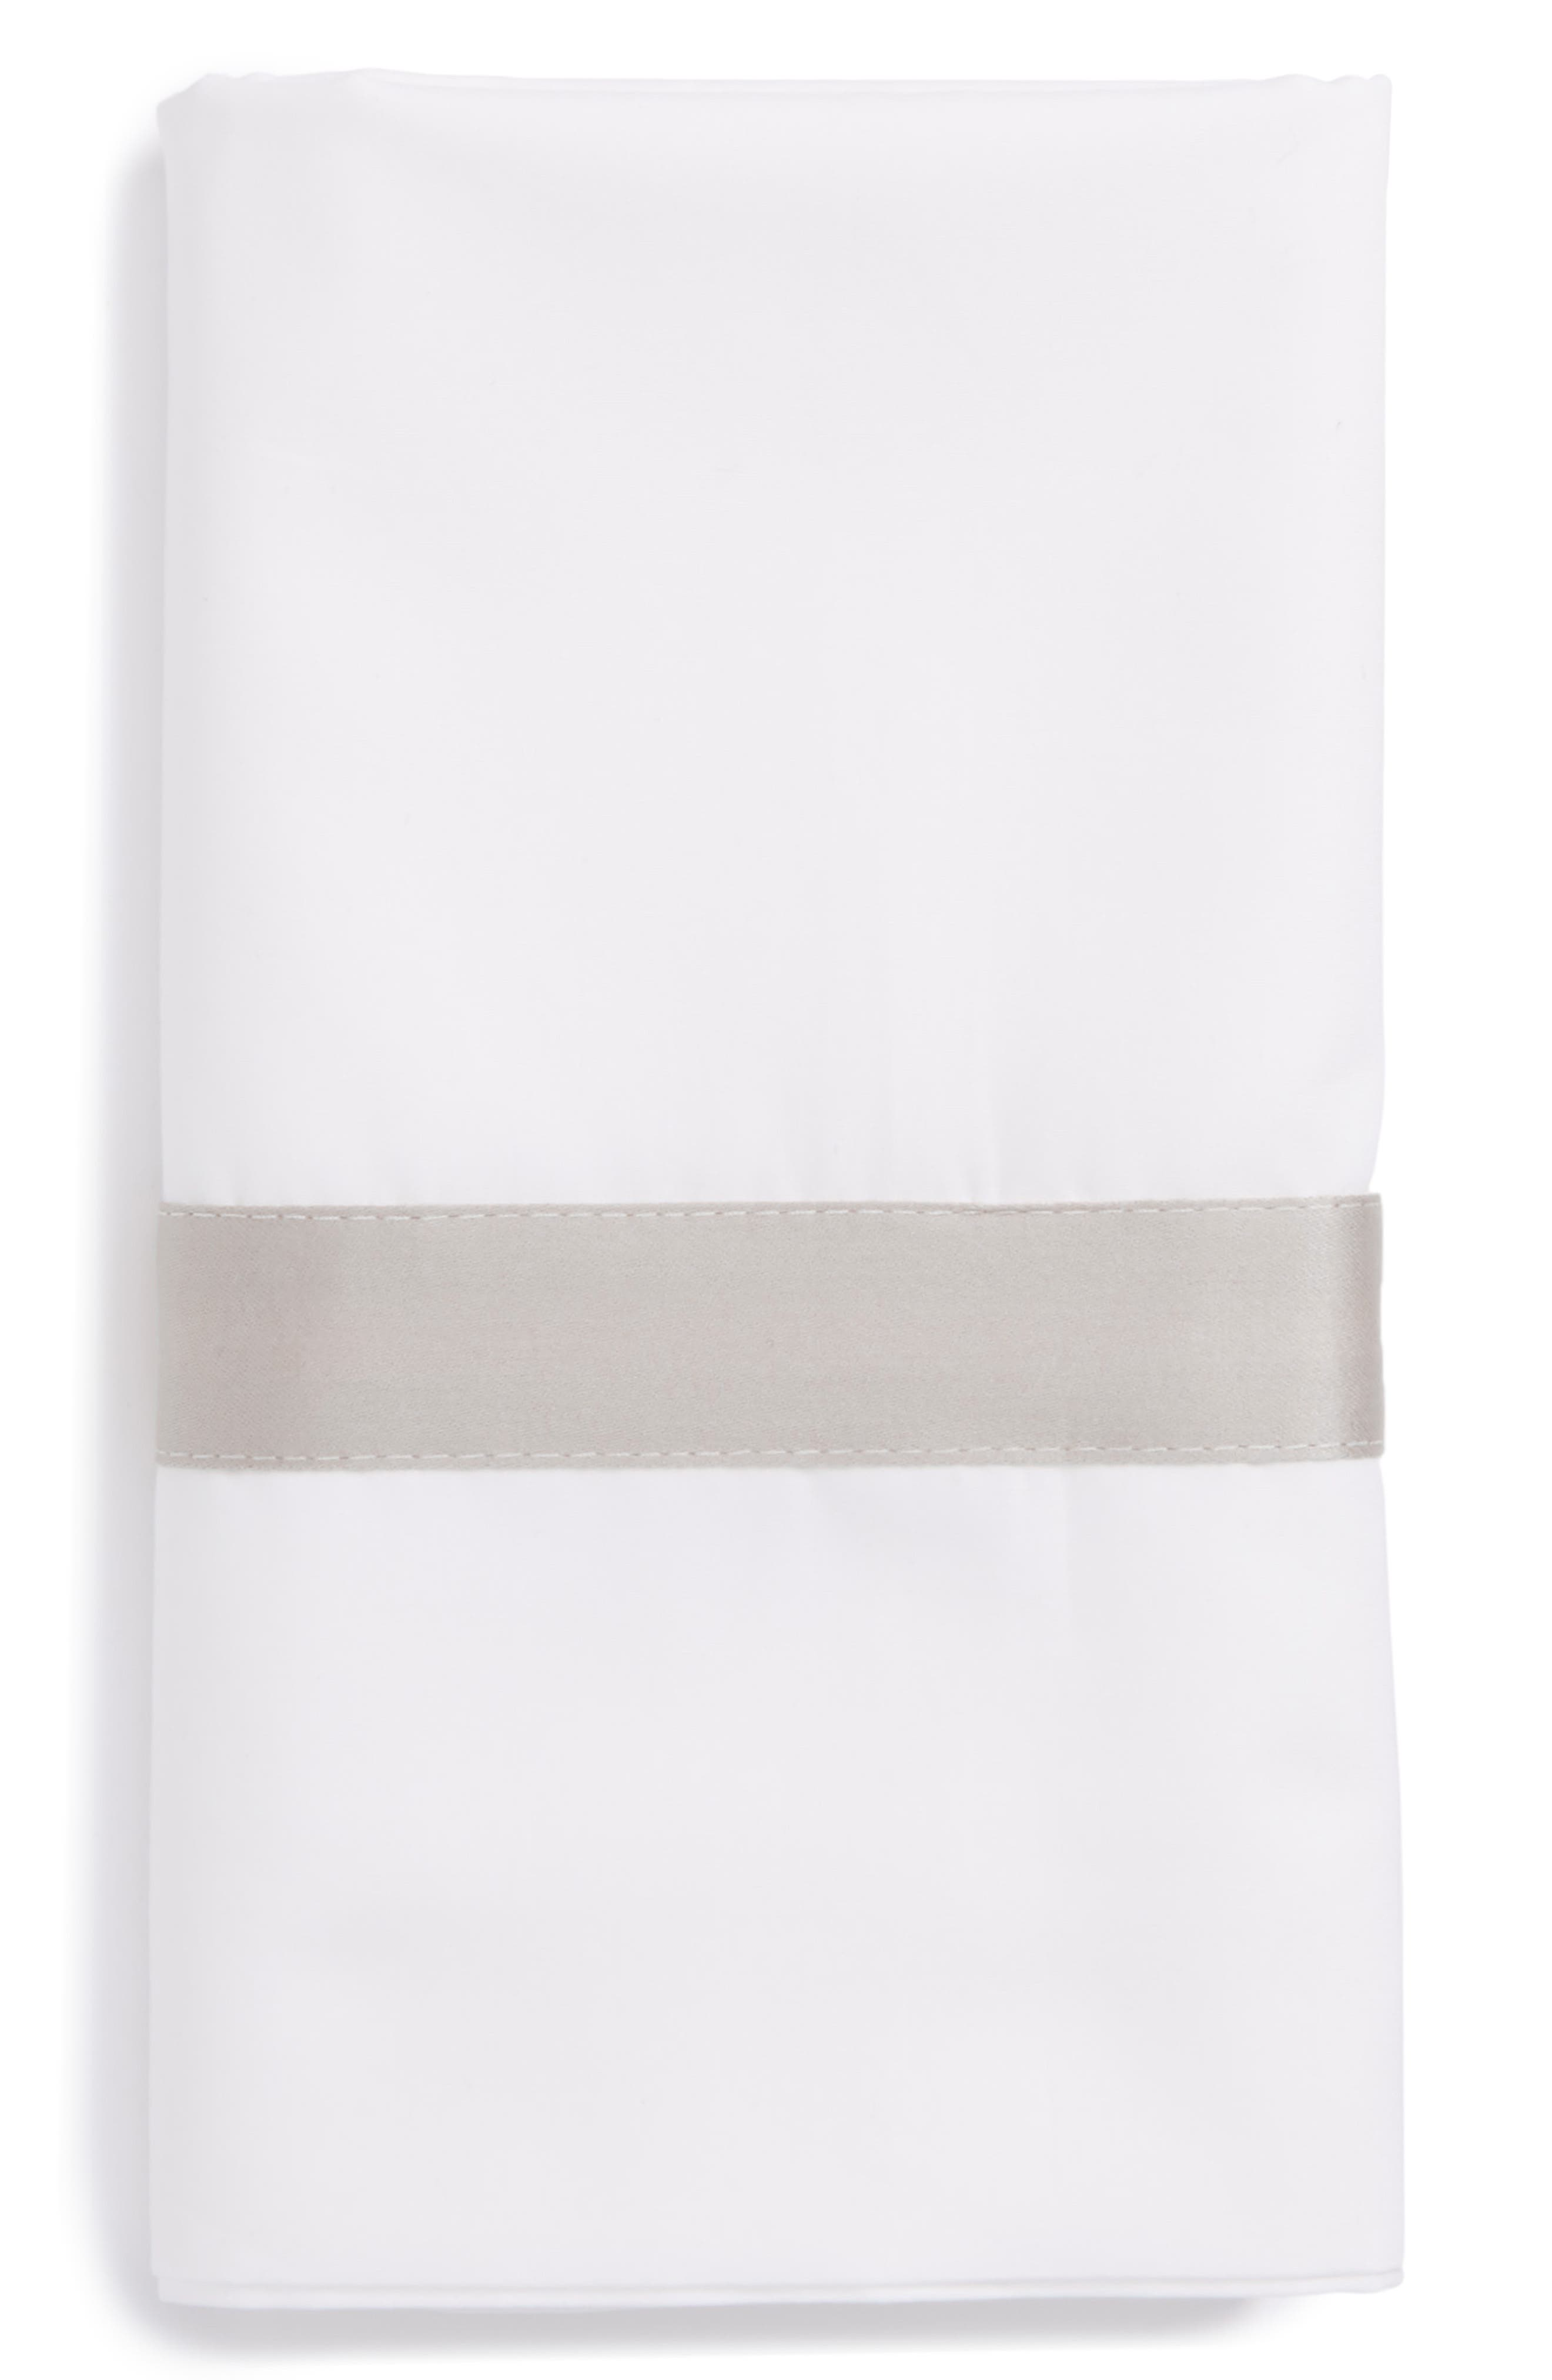 Alternate Image 1 Selected - Matouk Lowell 600 Thread Count Pillowcase